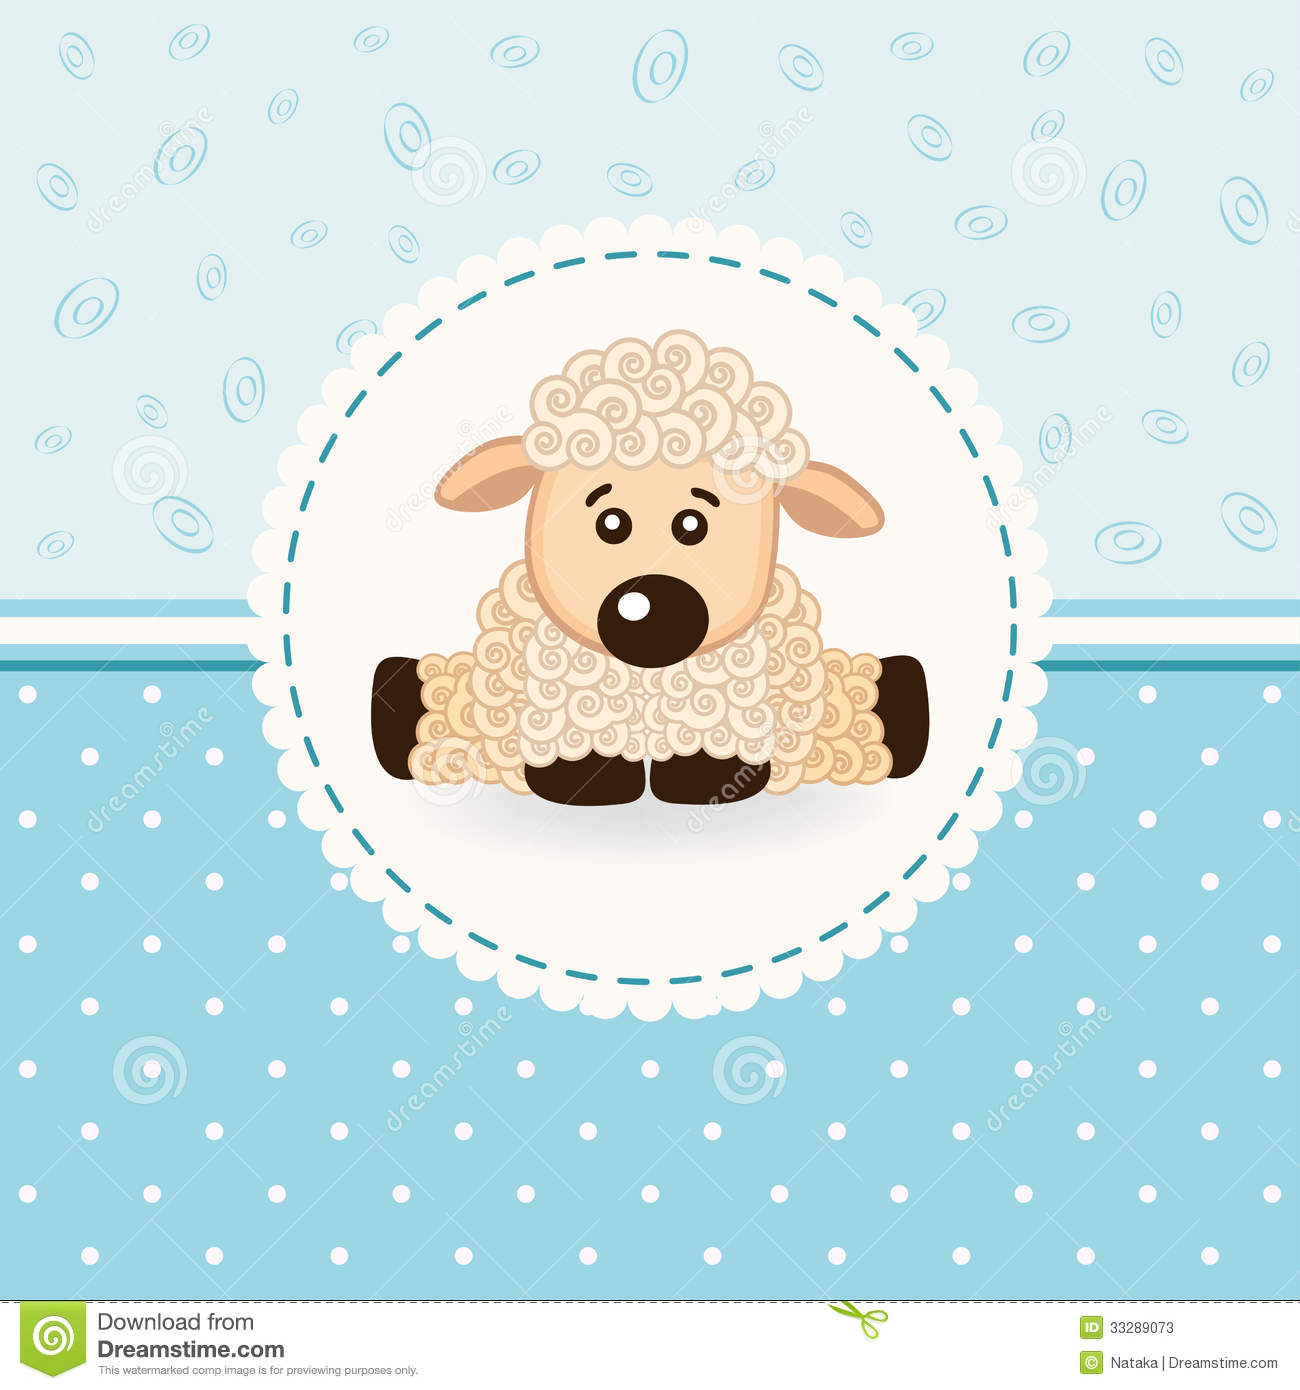 Sheep baby stock vector. Illustration of background, sheep - 33289073 for Baby Lamb Clipart  66pct